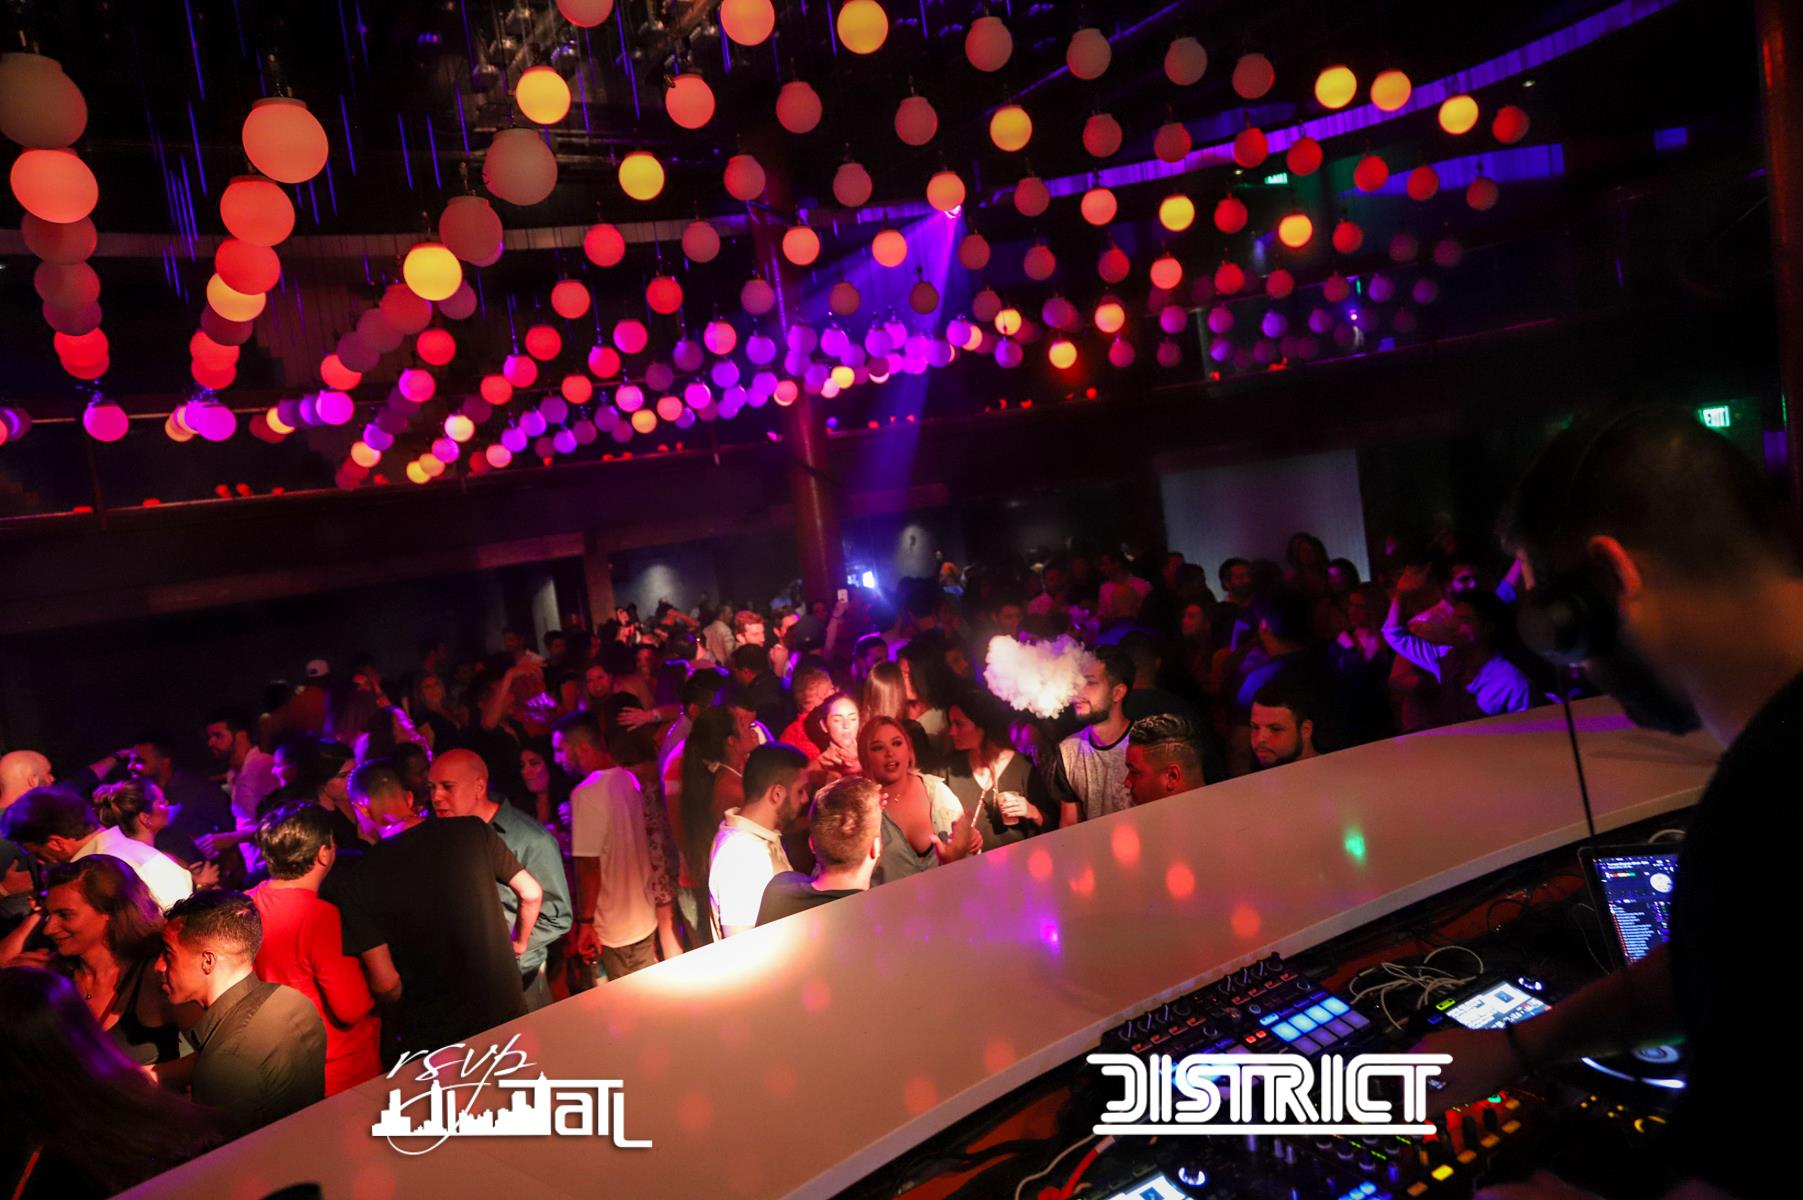 District Nightclub Atlanta presents Back 2 School Bash